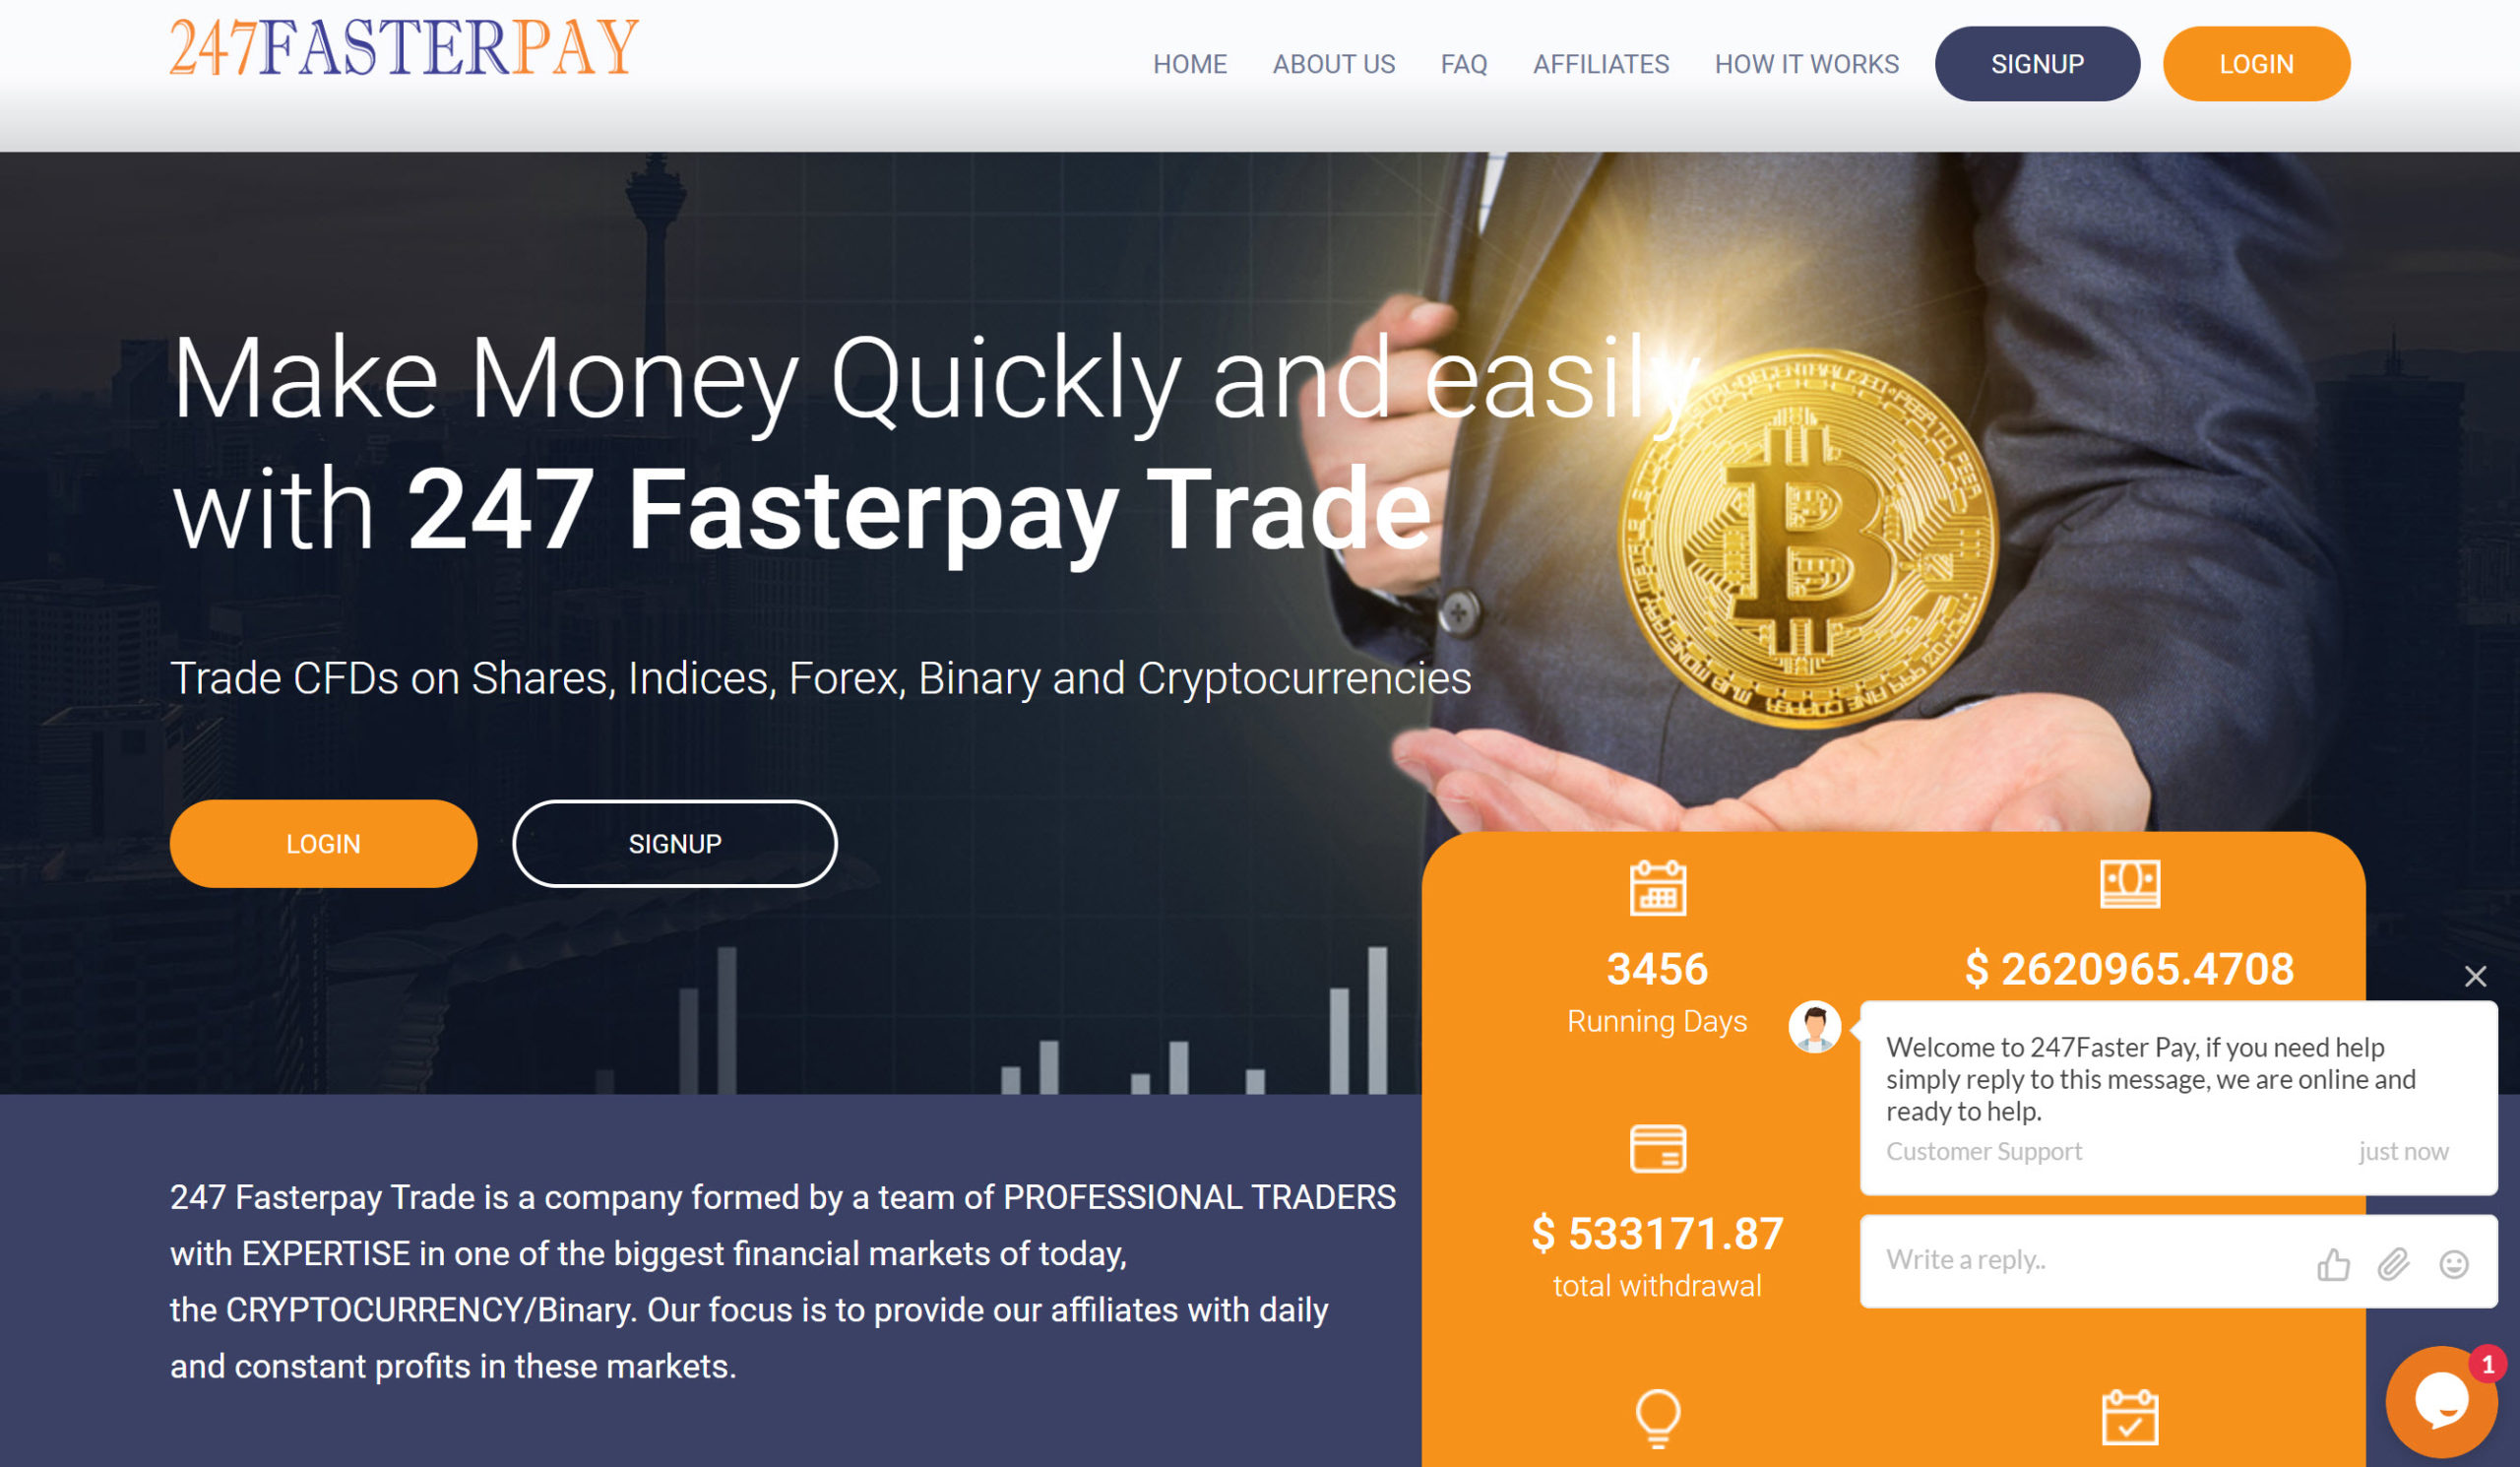 247 Faster Pay